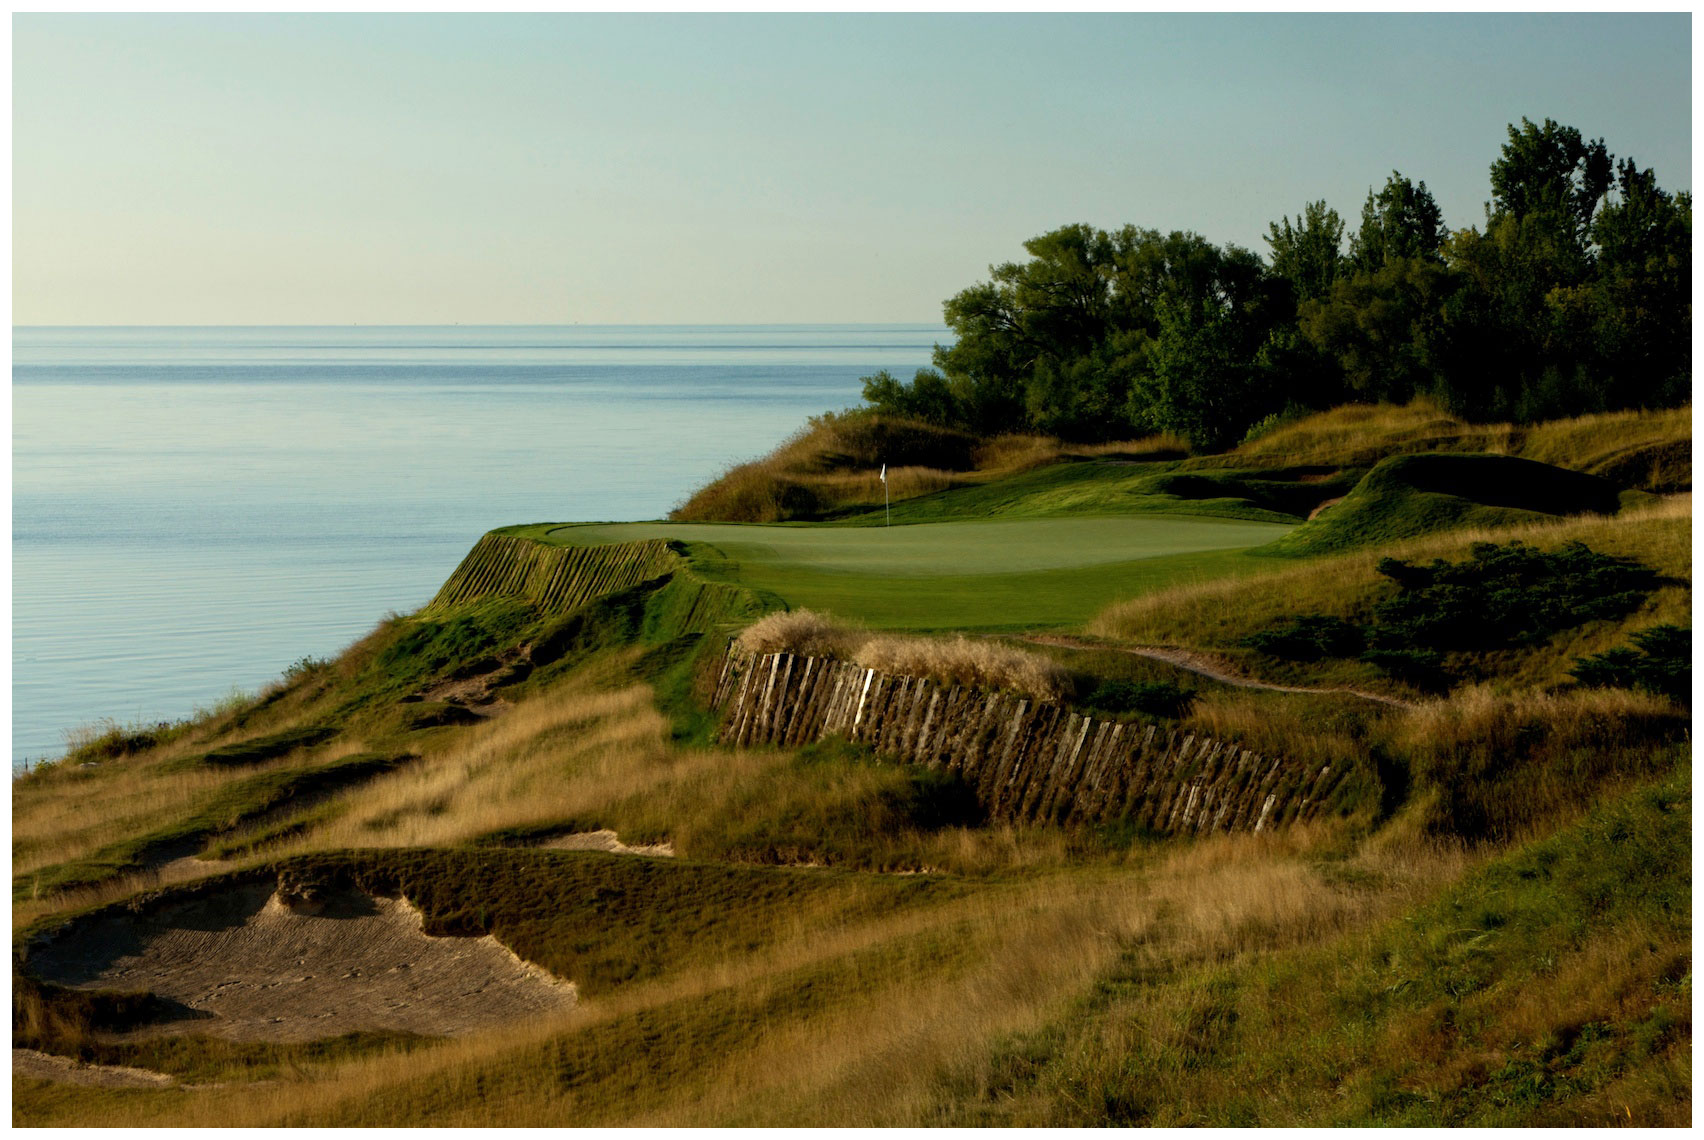 13th hole at Whistling Straits in Kohler, Wisconsin